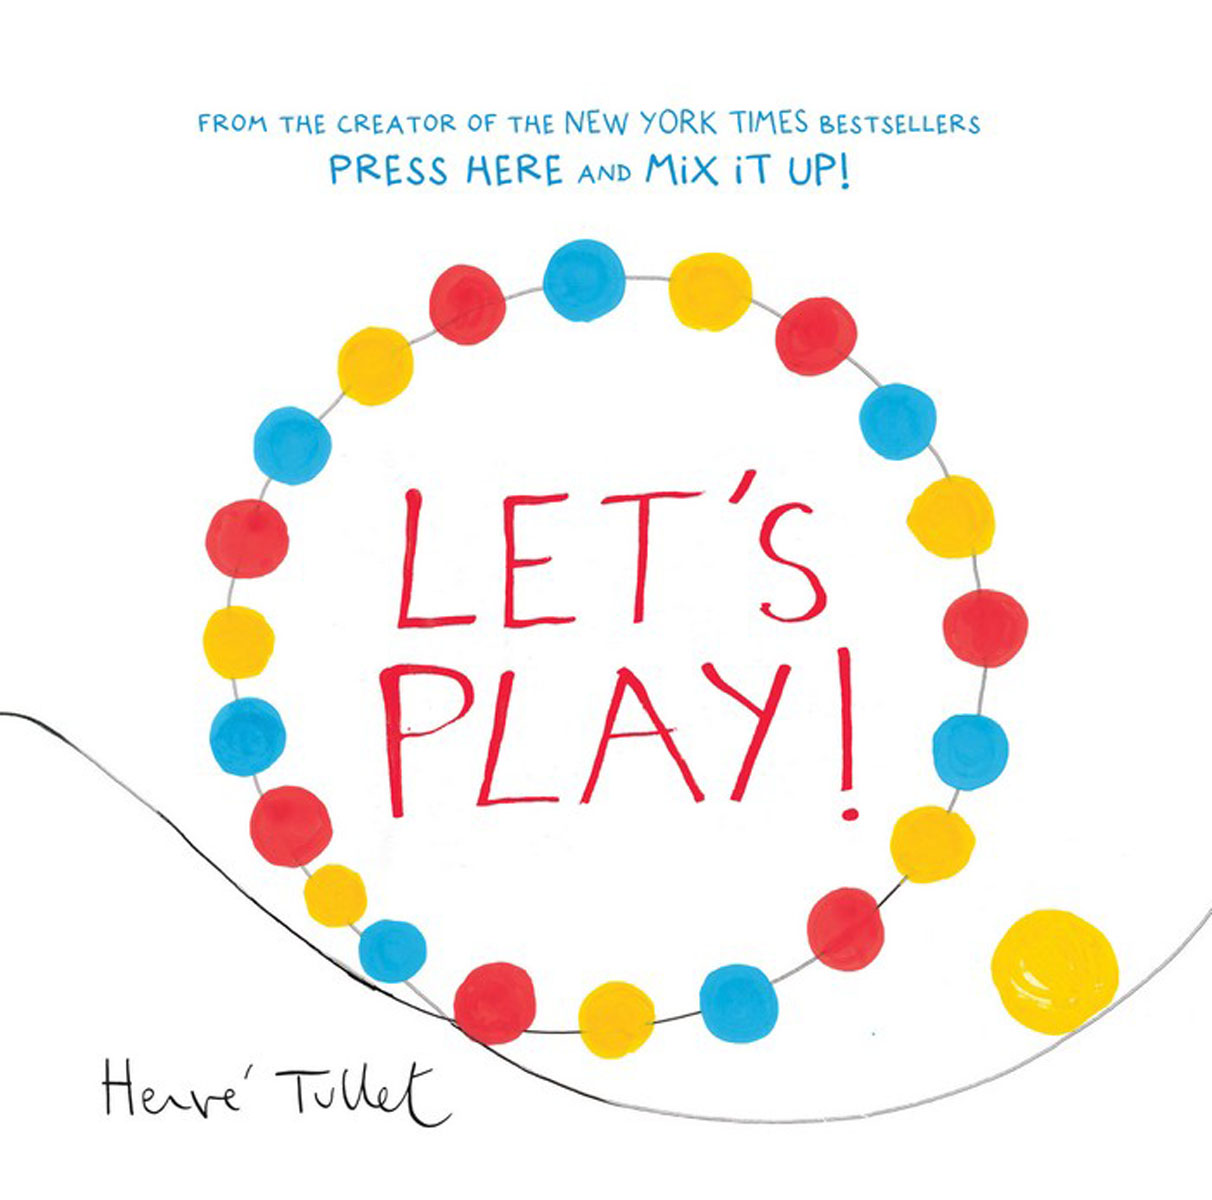 Let's Play! dot